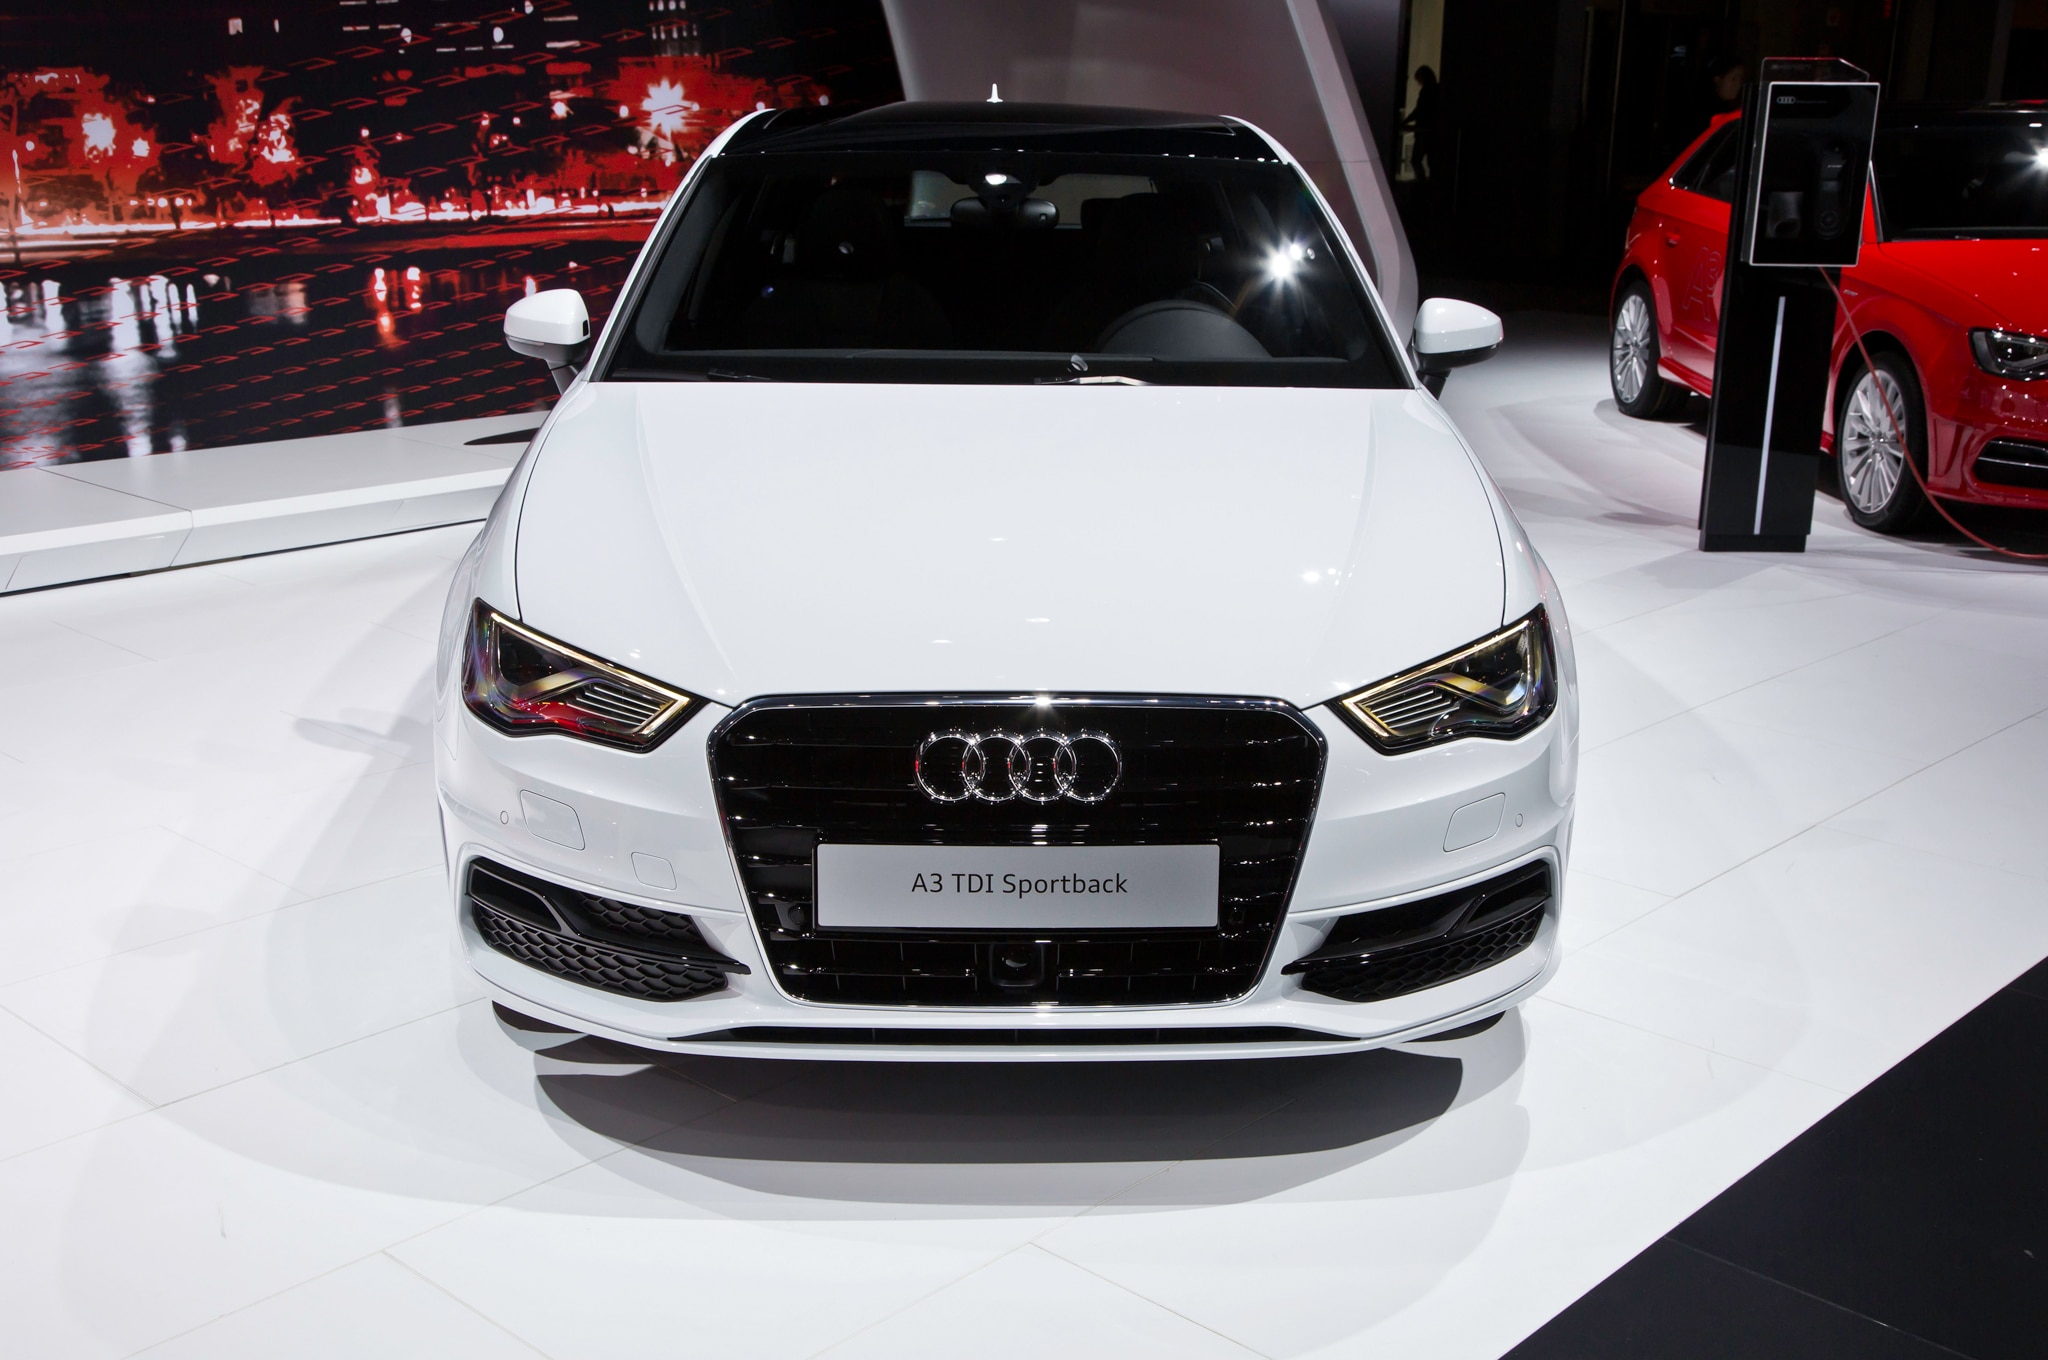 2016 audi a3 tdi hatchback joins lineup automobile magazine. Black Bedroom Furniture Sets. Home Design Ideas